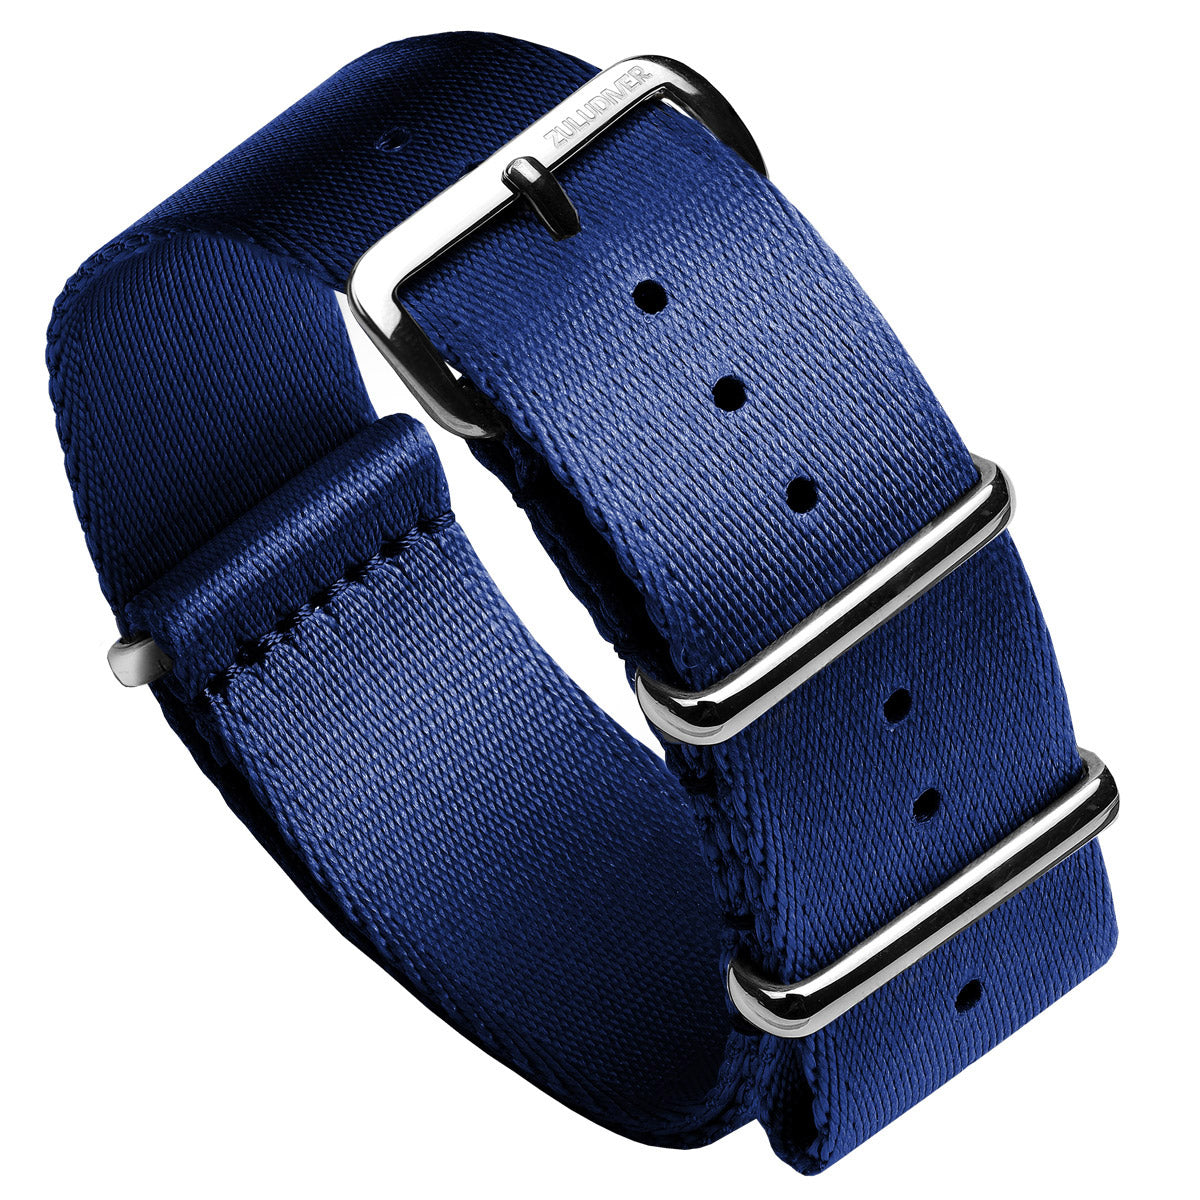 Professional NATO Watch Strap with Polished Hardware